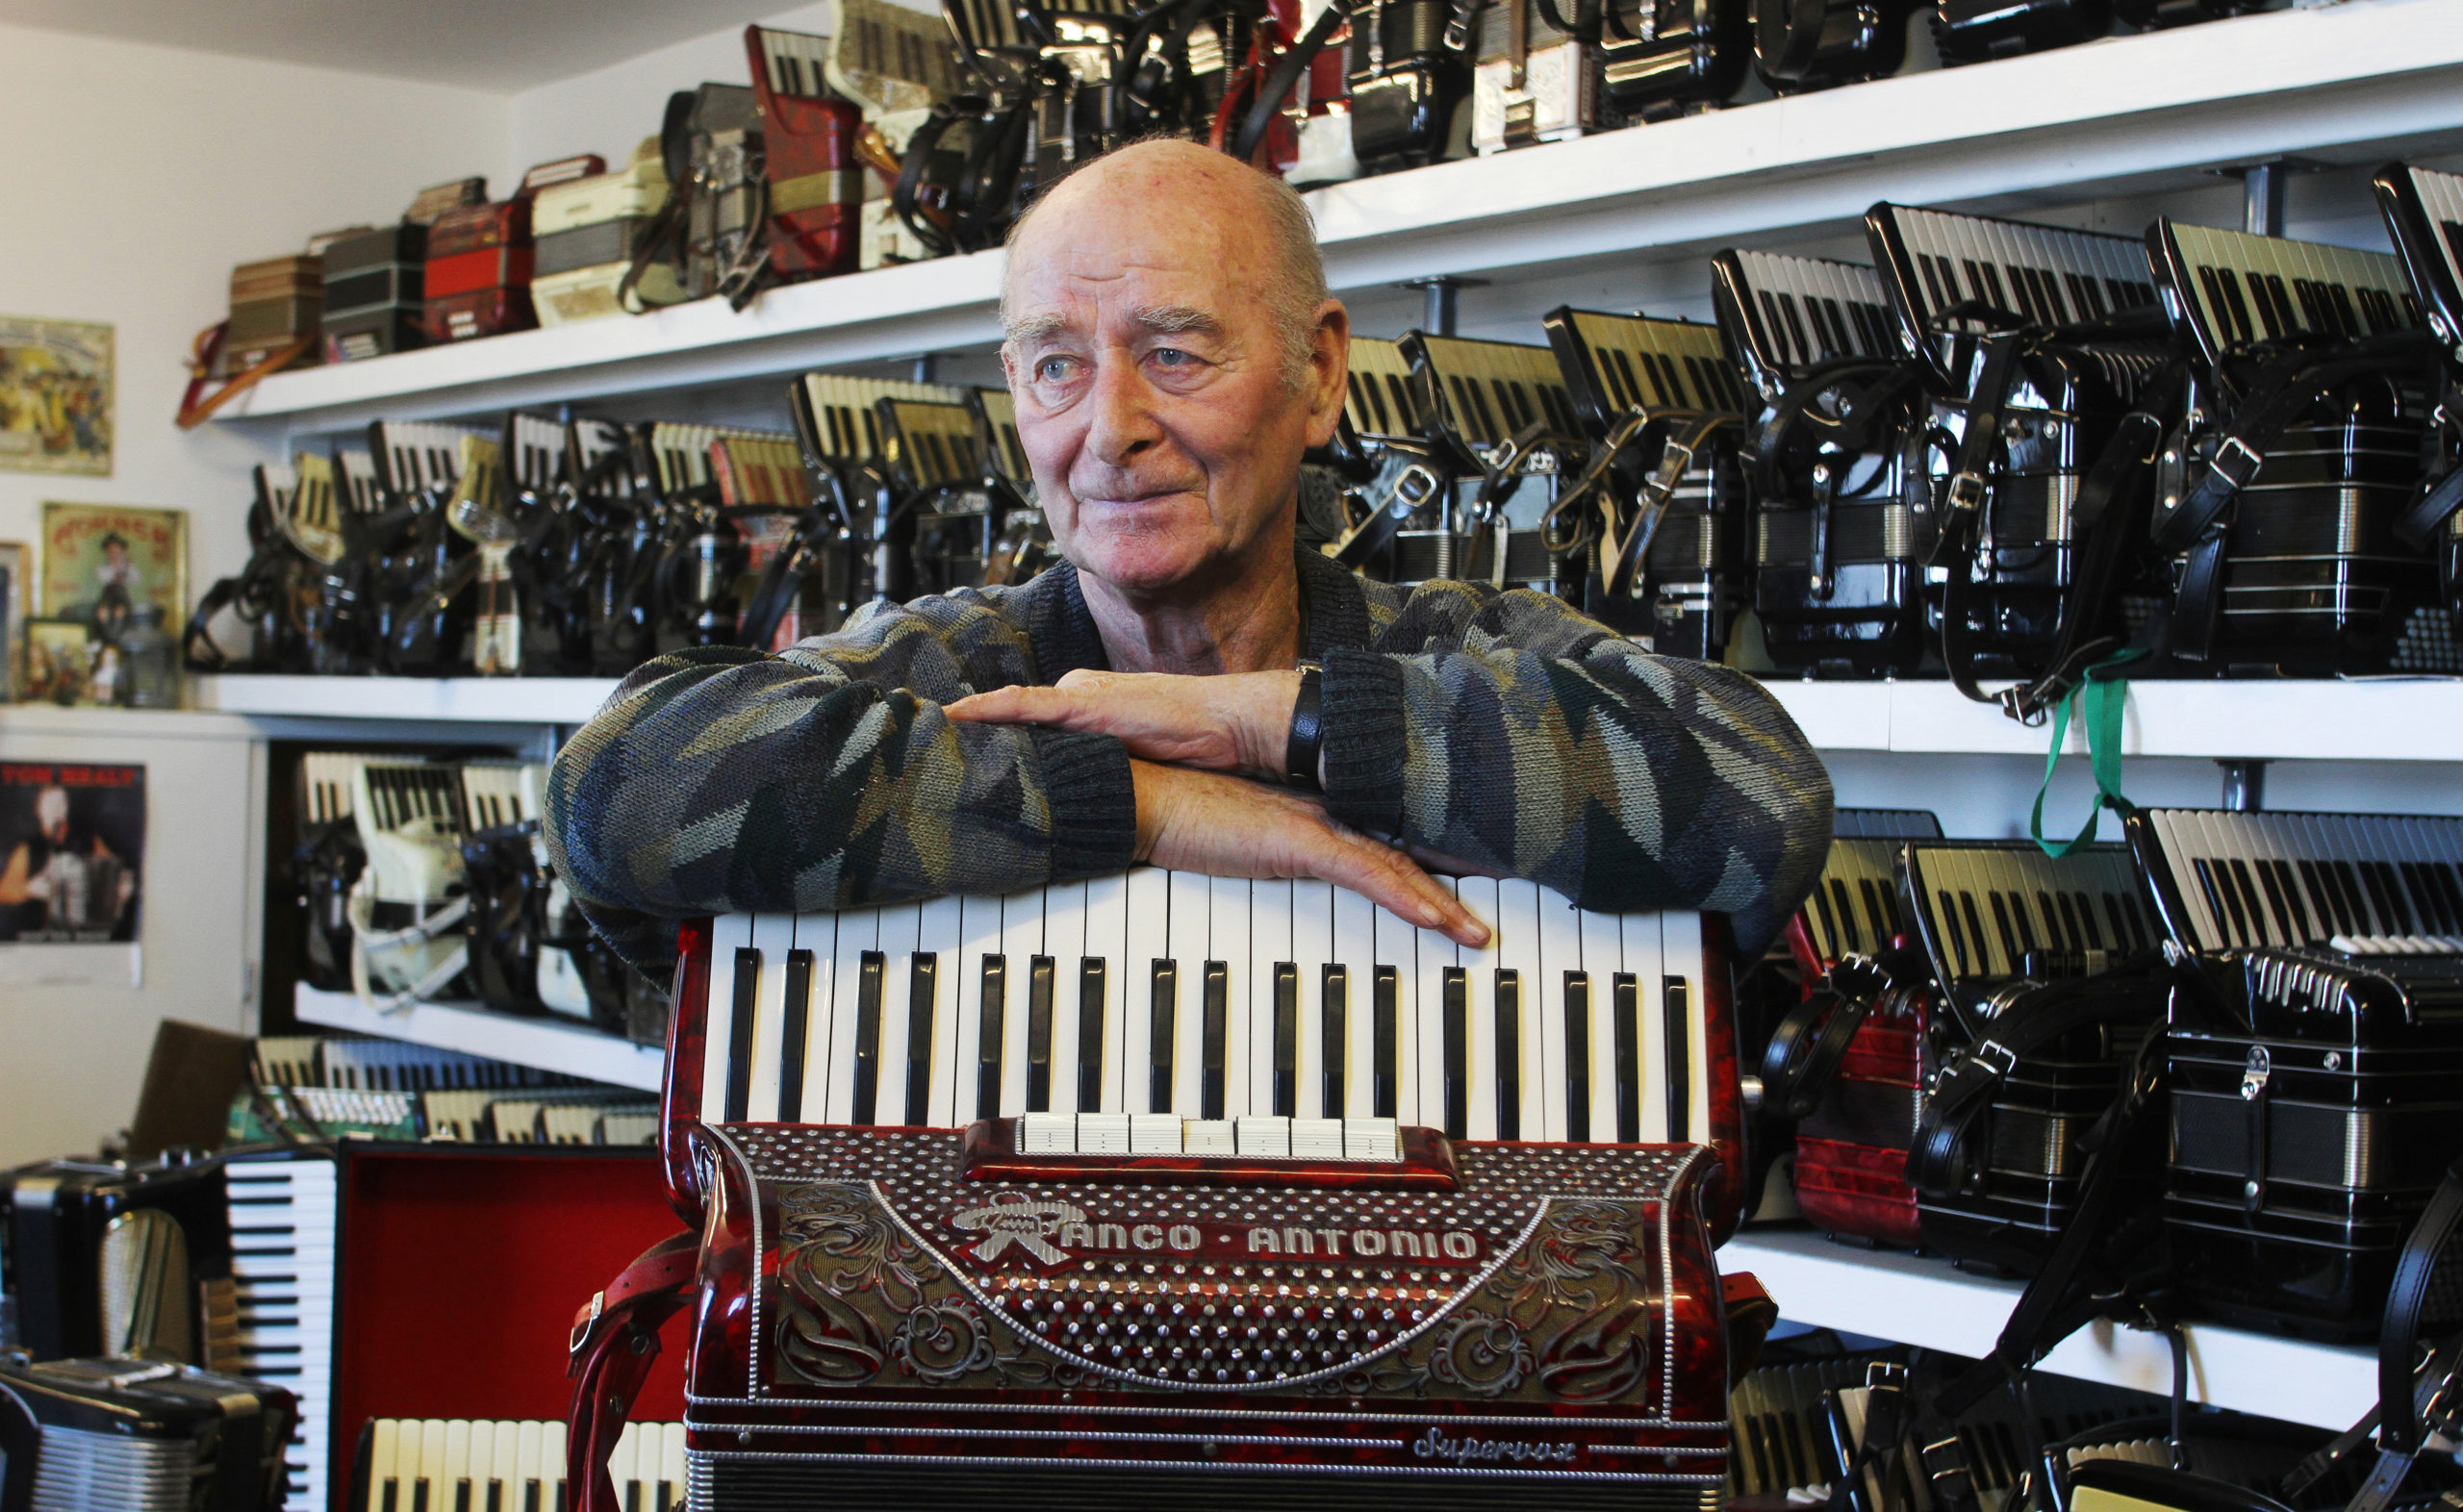 Usan fisherman David Pullar who has died. Pic shows David in his purpose built accordion music room at his home at Usan, Angus  pic Paul Reid